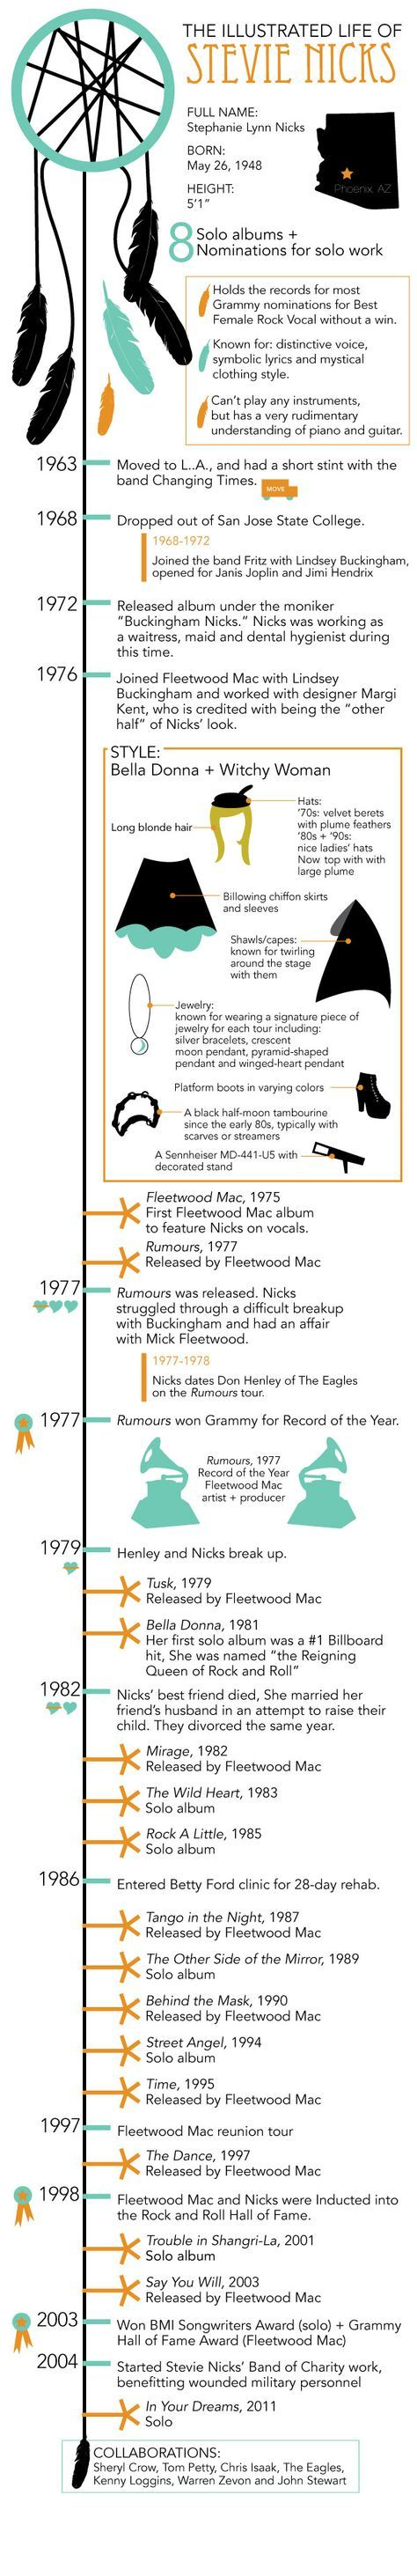 Infographic: The Illustrated Life of Stevie Nicks